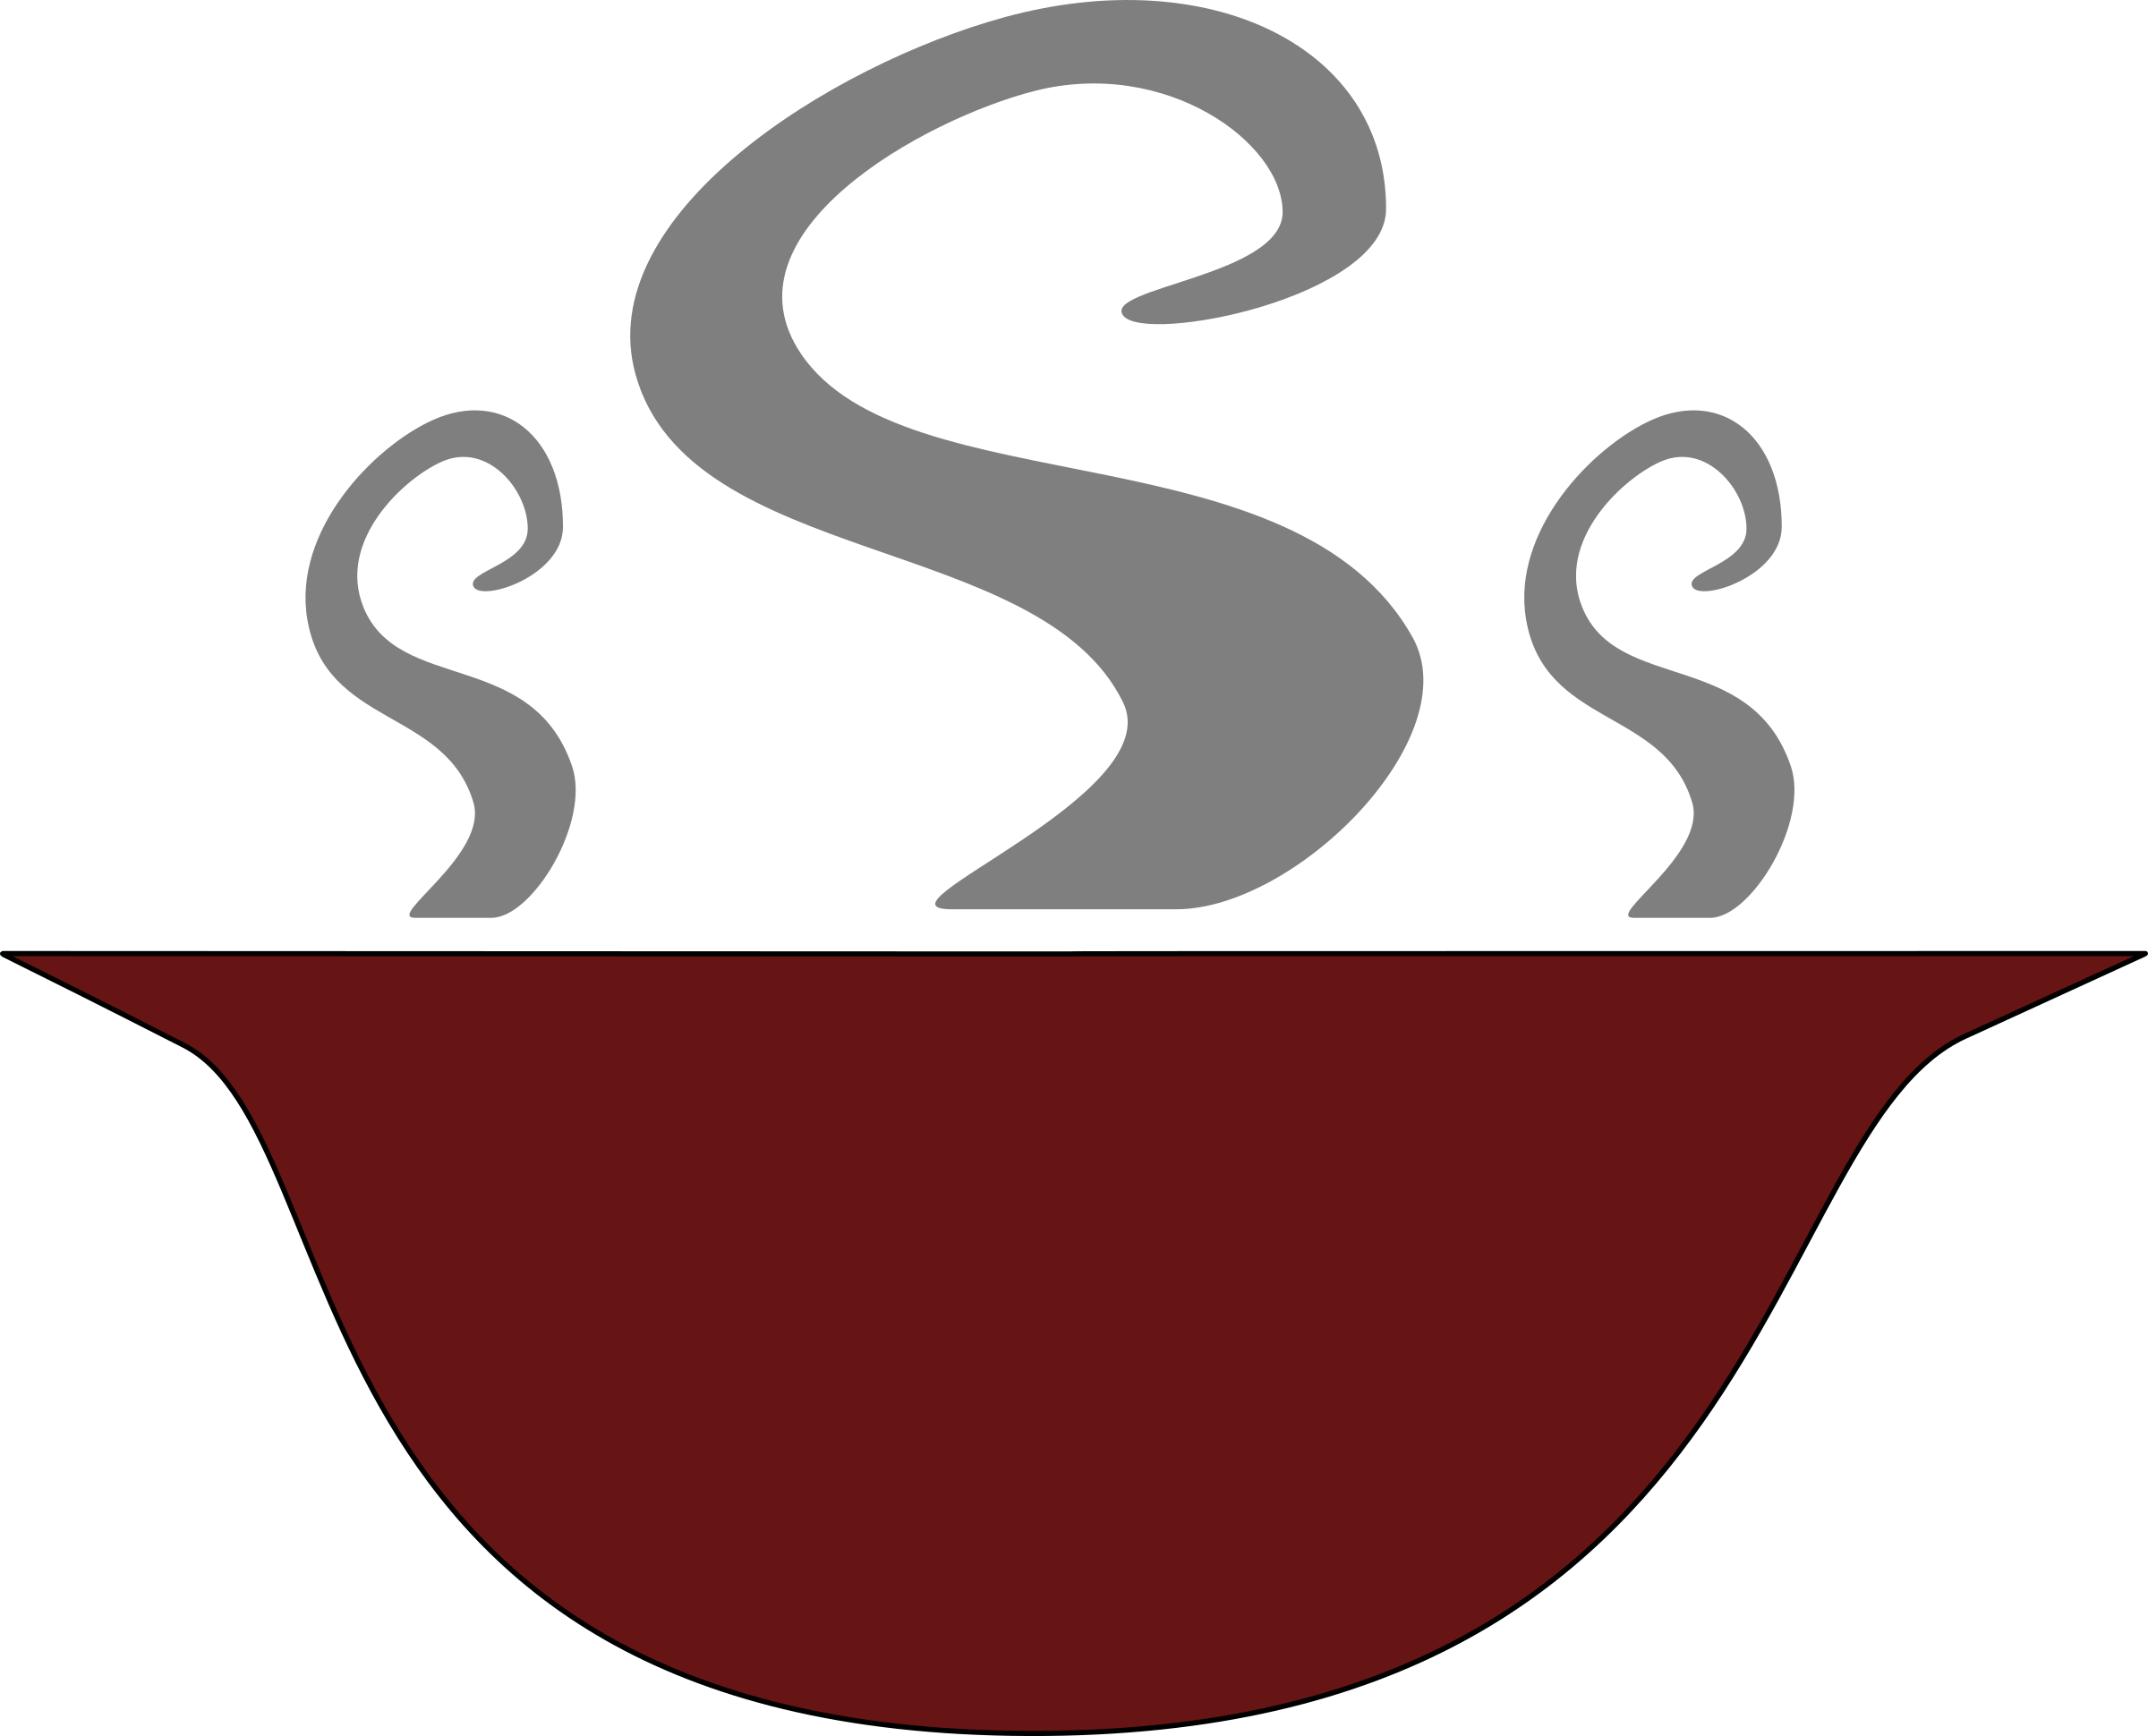 Plate clipart soup bowl. Hulasch of steaming